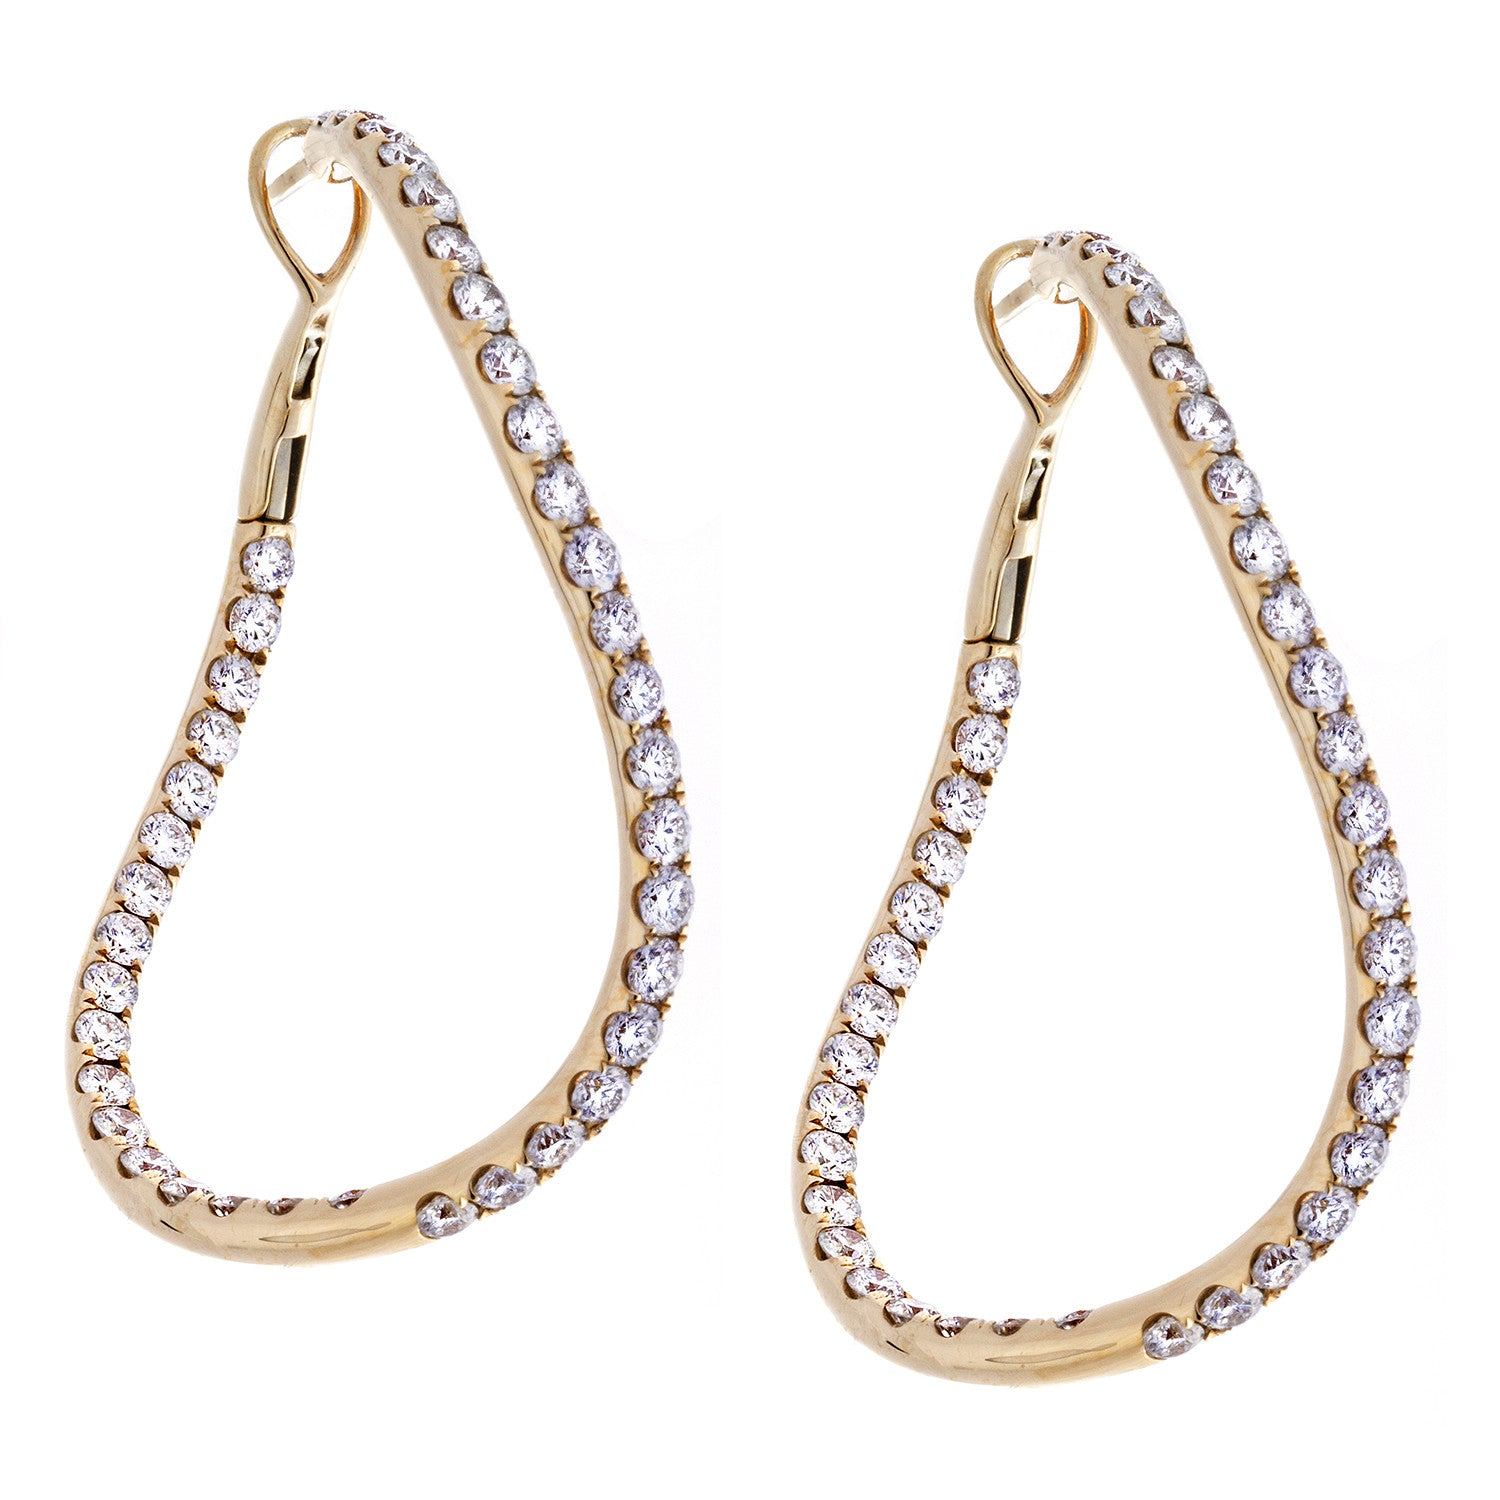 Diamond & 18K Rose Gold Tweested Hoop Earrings